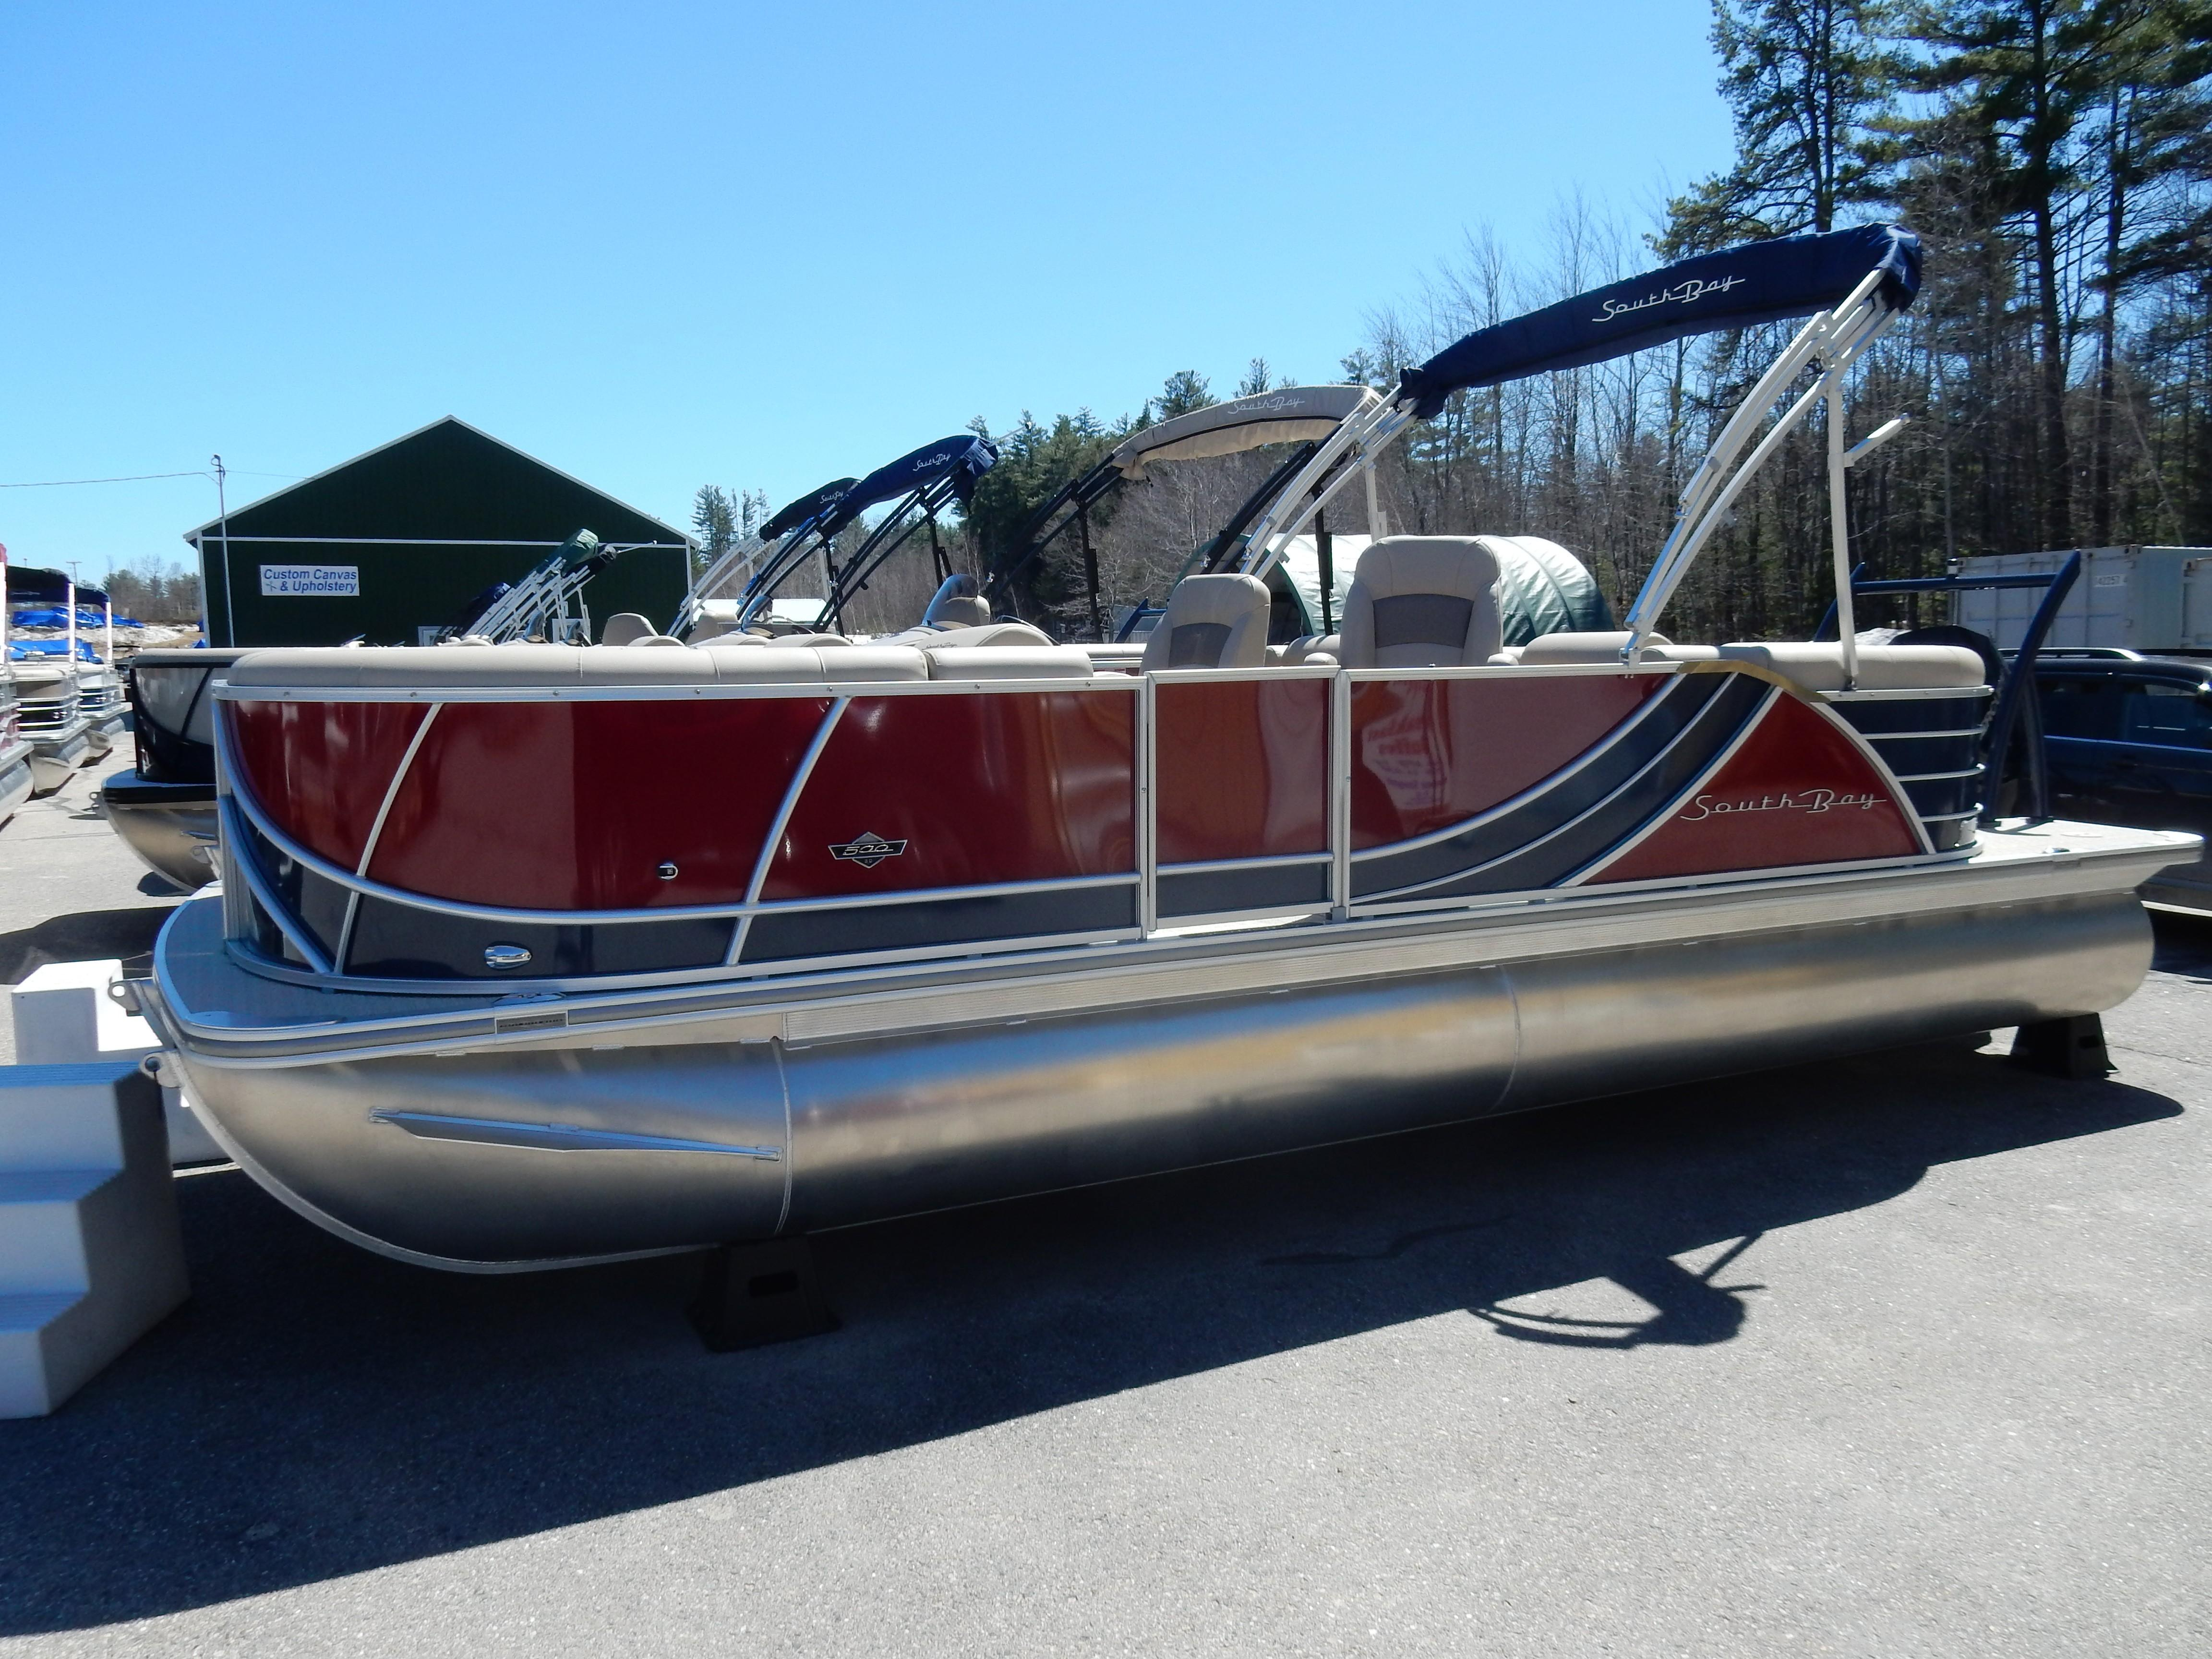 medium resolution of 2019 south bay 523rs center ossipee new hampshire wards boat shop boat wiring service nh